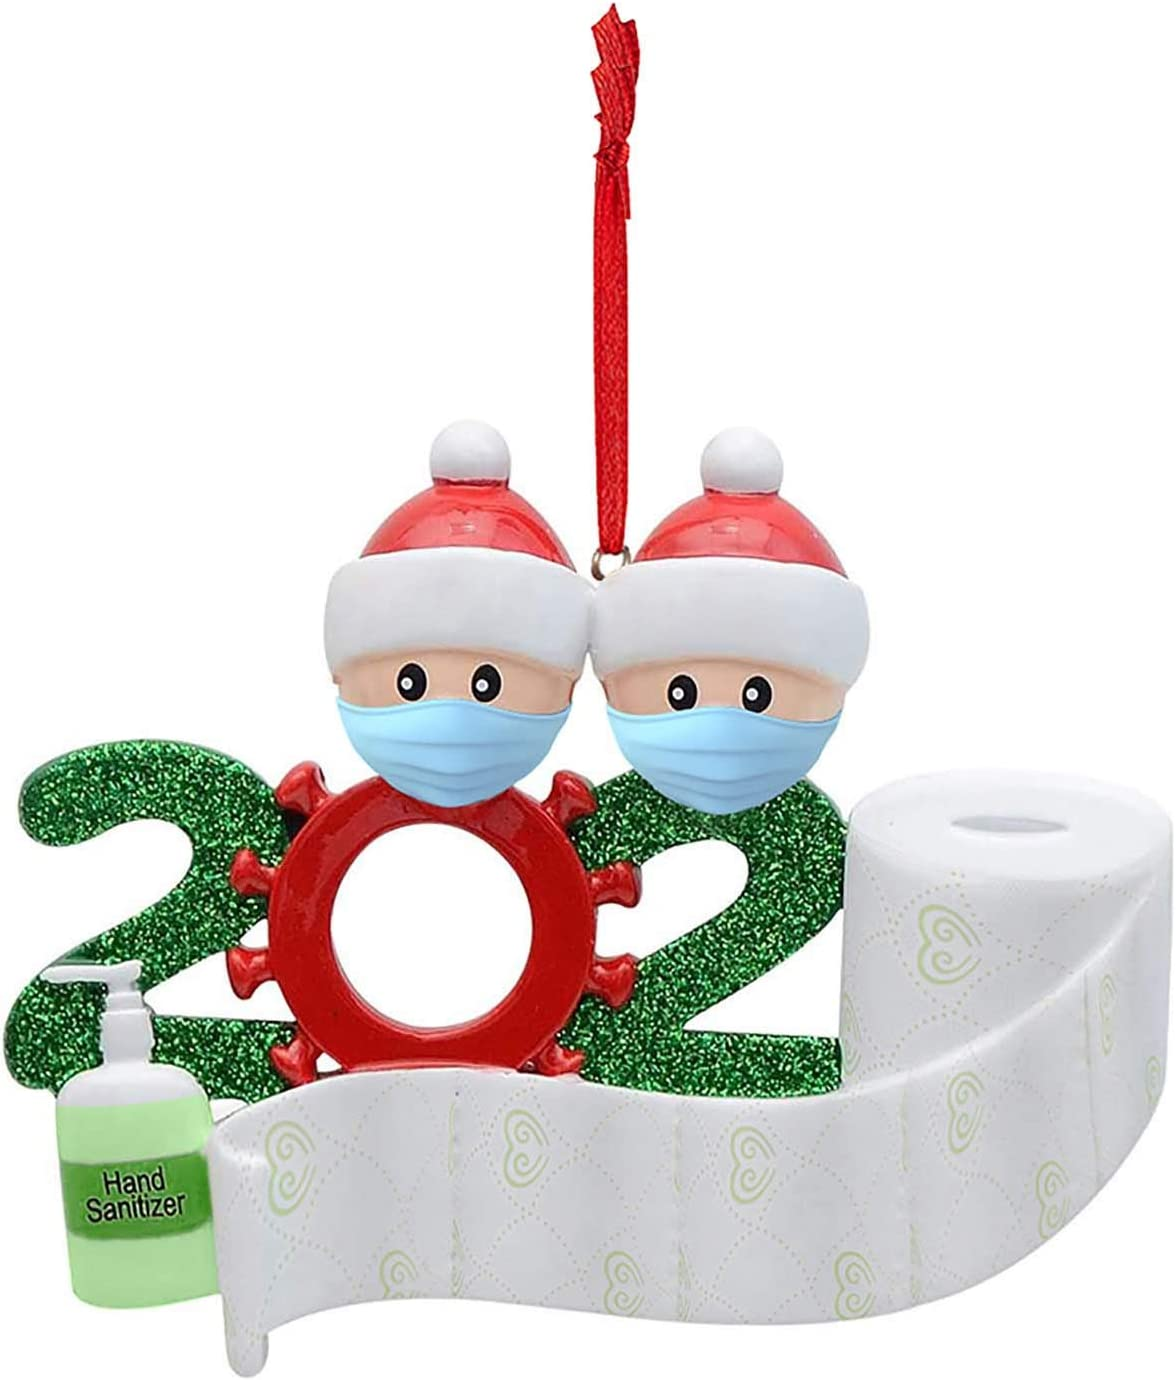 Gallity Lights 2pcs Christmas Tree Hanging Pendant Survived Family Ornaments 2020 Covid Favors Santa Claus Gift Xmas Party Favors Nice Home Office Decor Holiday Decorations (A)